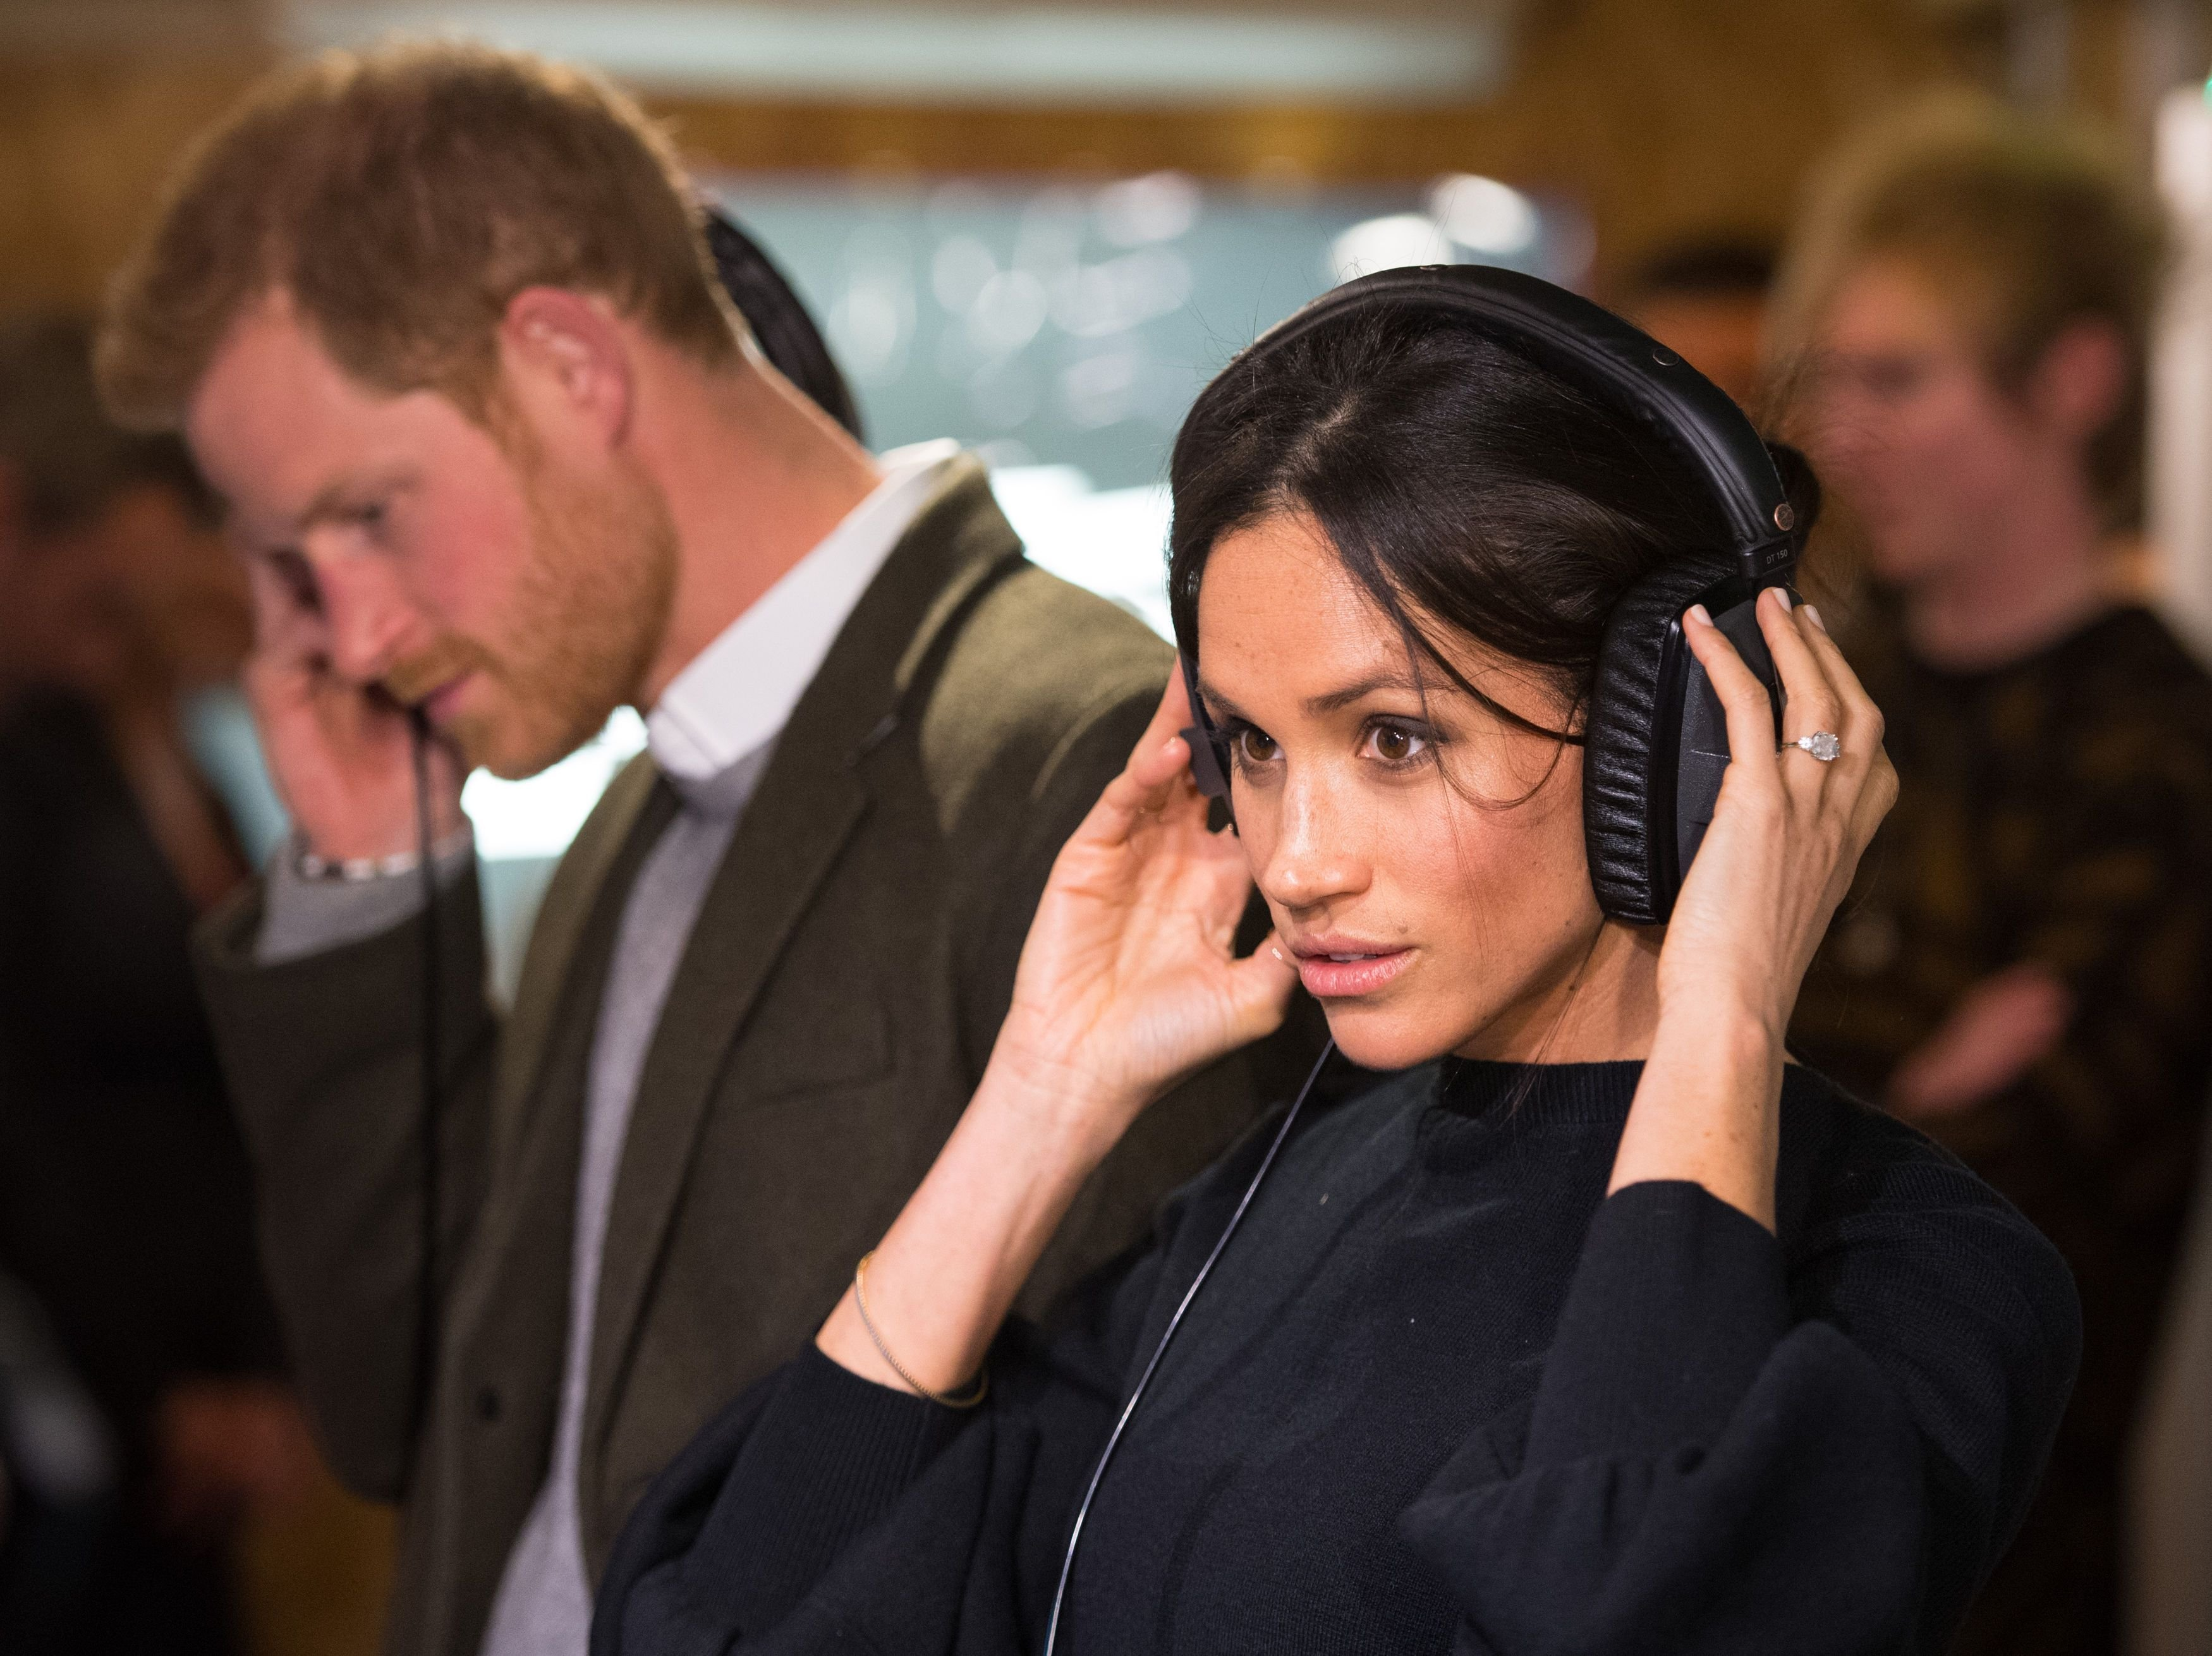 Prince Harry and Meghan Markle listen to a broadcast at Reprezent 107.3FM in Pop Brixton on January 9, 2018